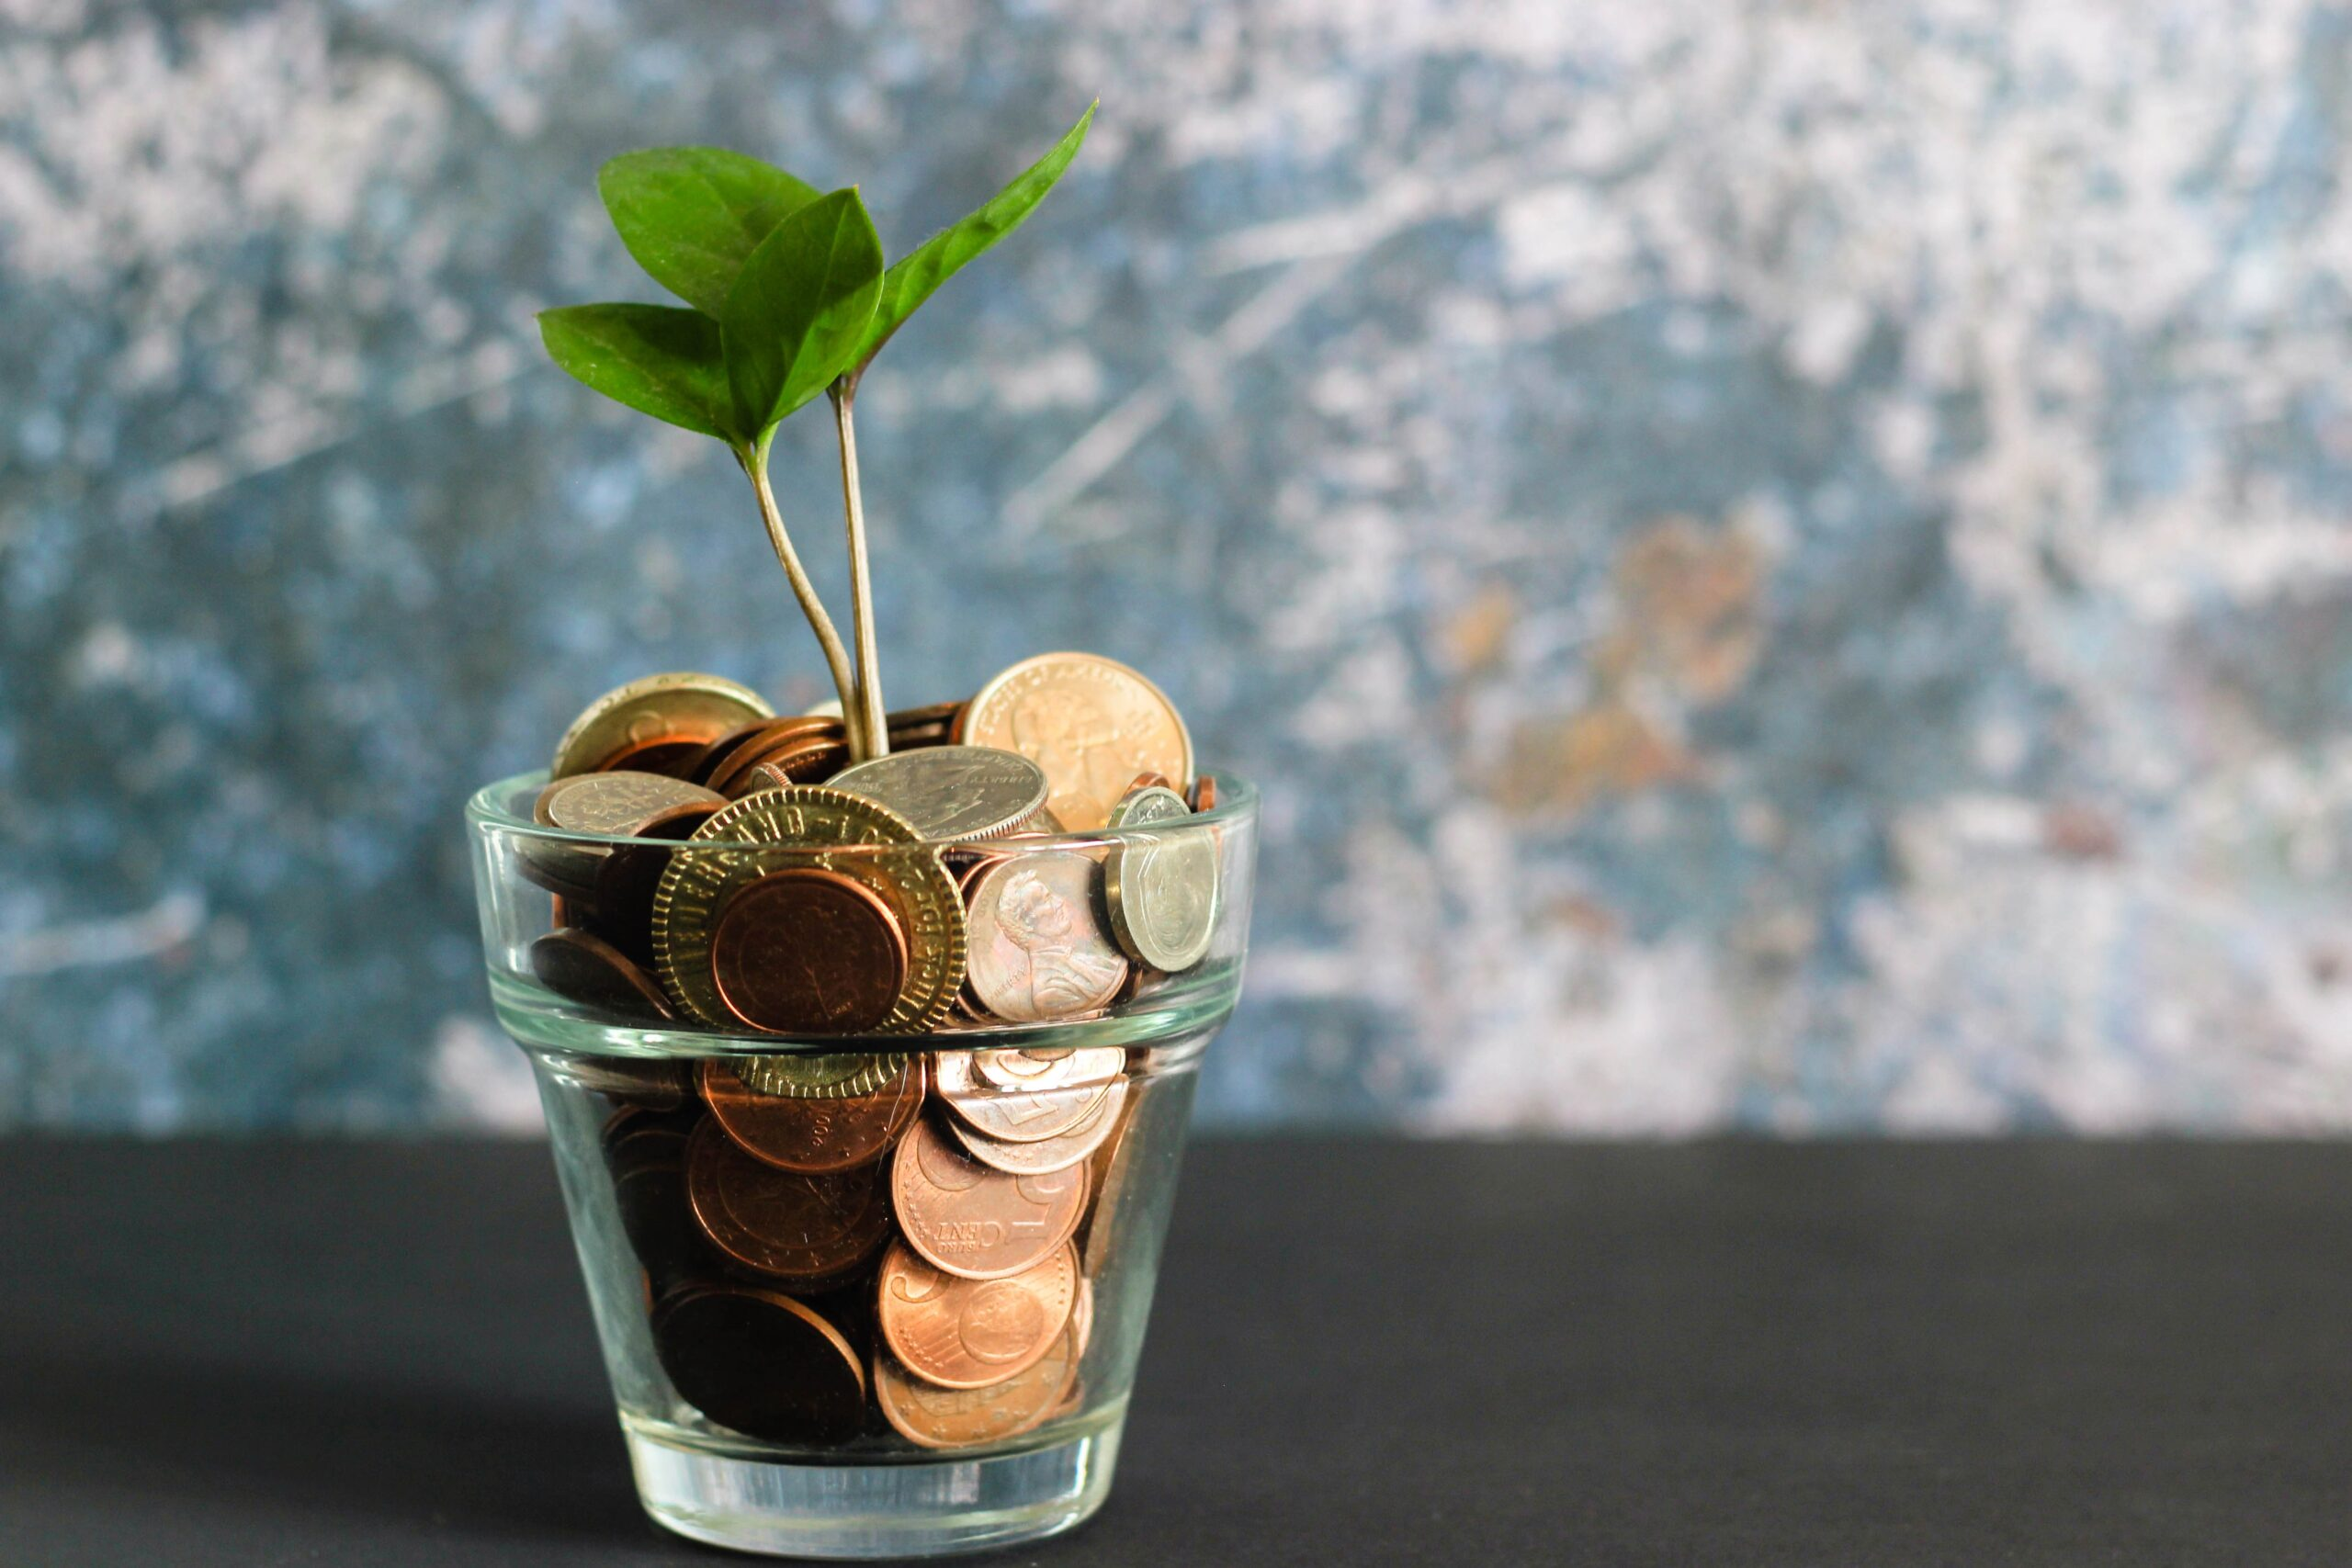 A clear cup holding some coins and a sprouting plant